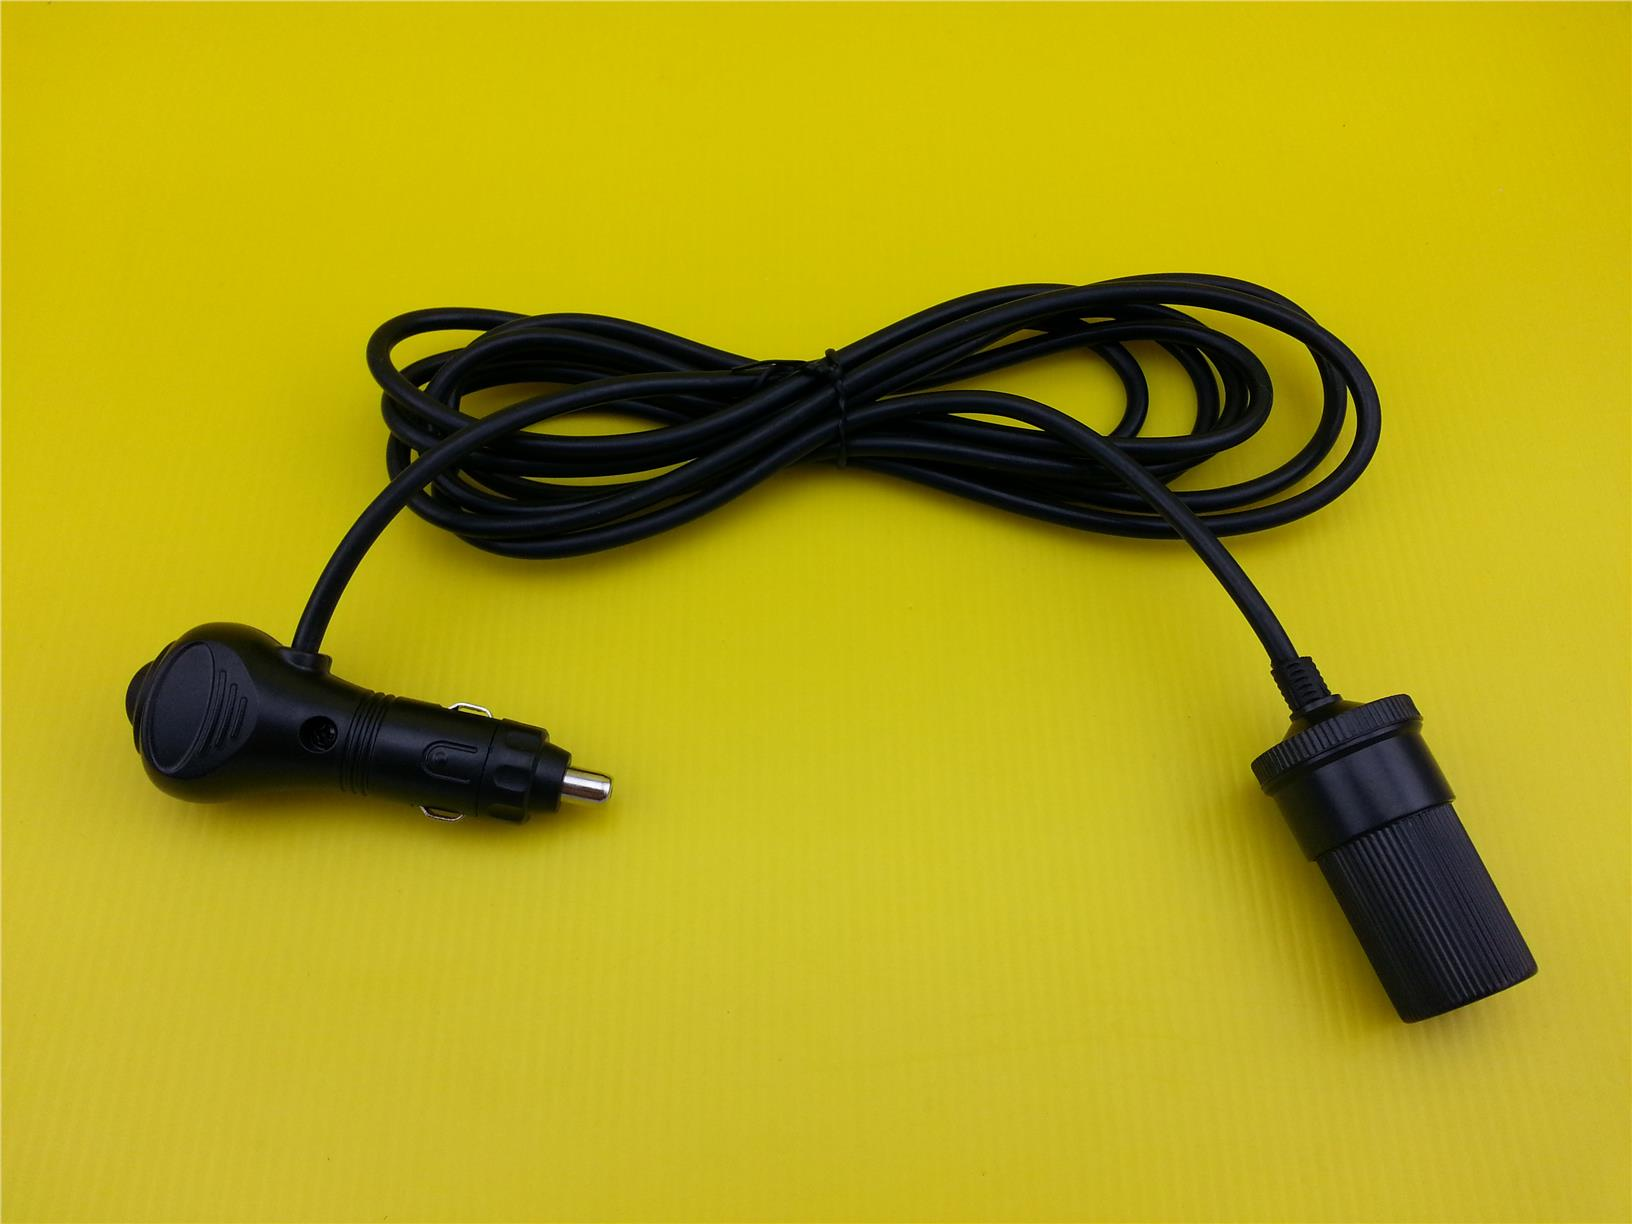 12V 15A 180W Car Cigarette Lighter Socket Extension Cord Cable